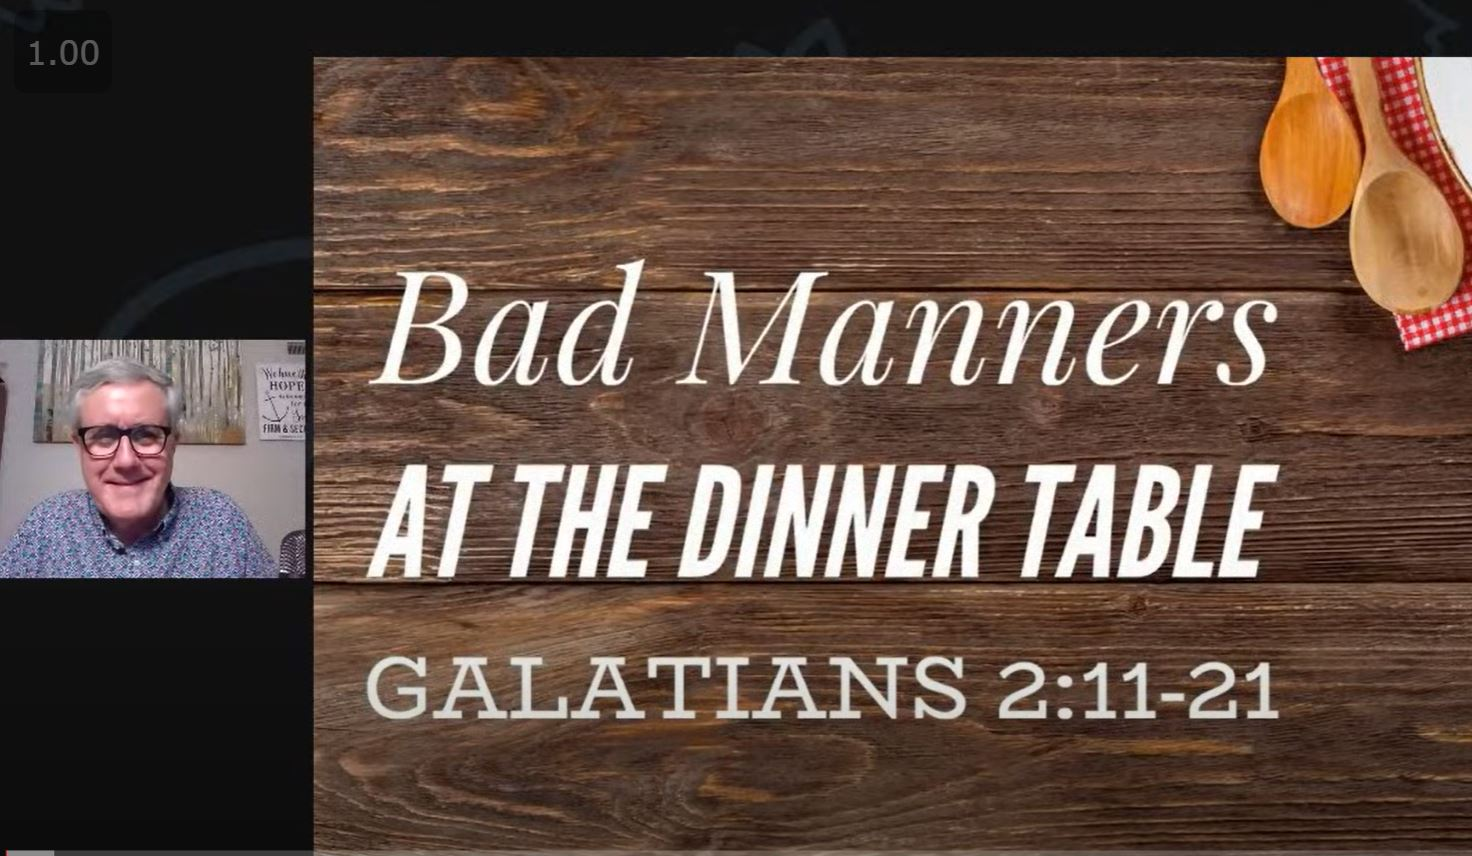 Bad Manners at the Dinner Table (Galatians 2:11-21)